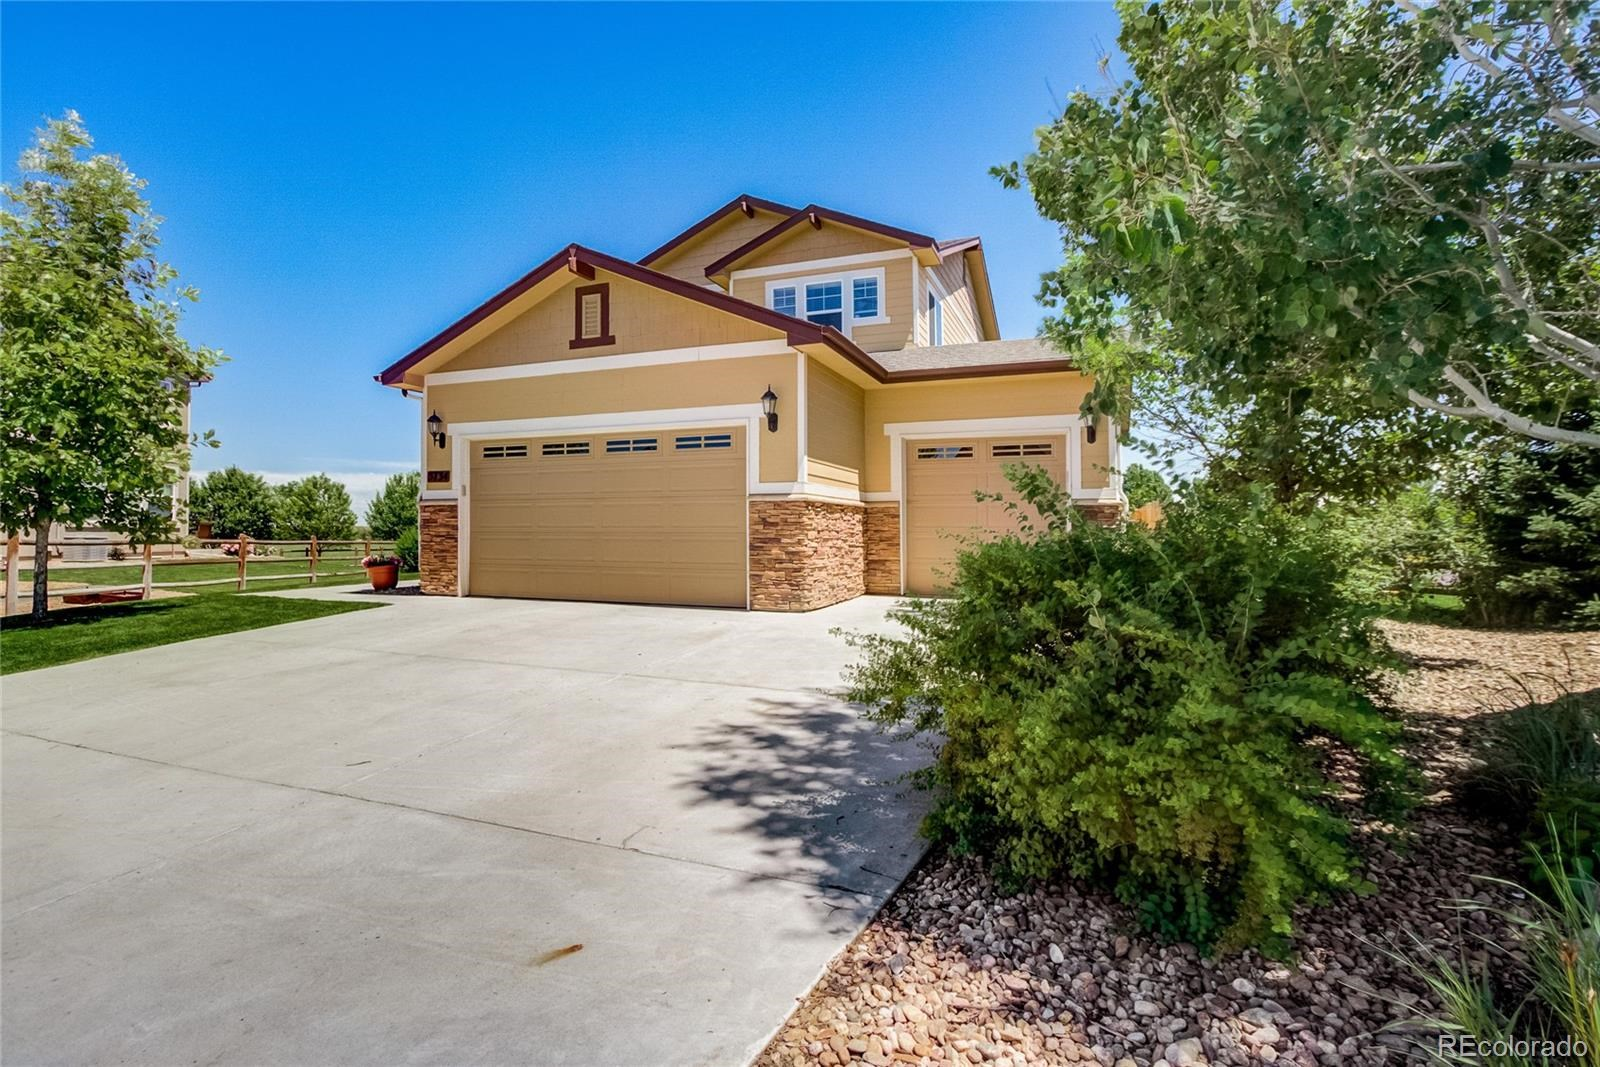 MLS# 8165557 - 2 - 5734 Pineview Court, Windsor, CO 80550